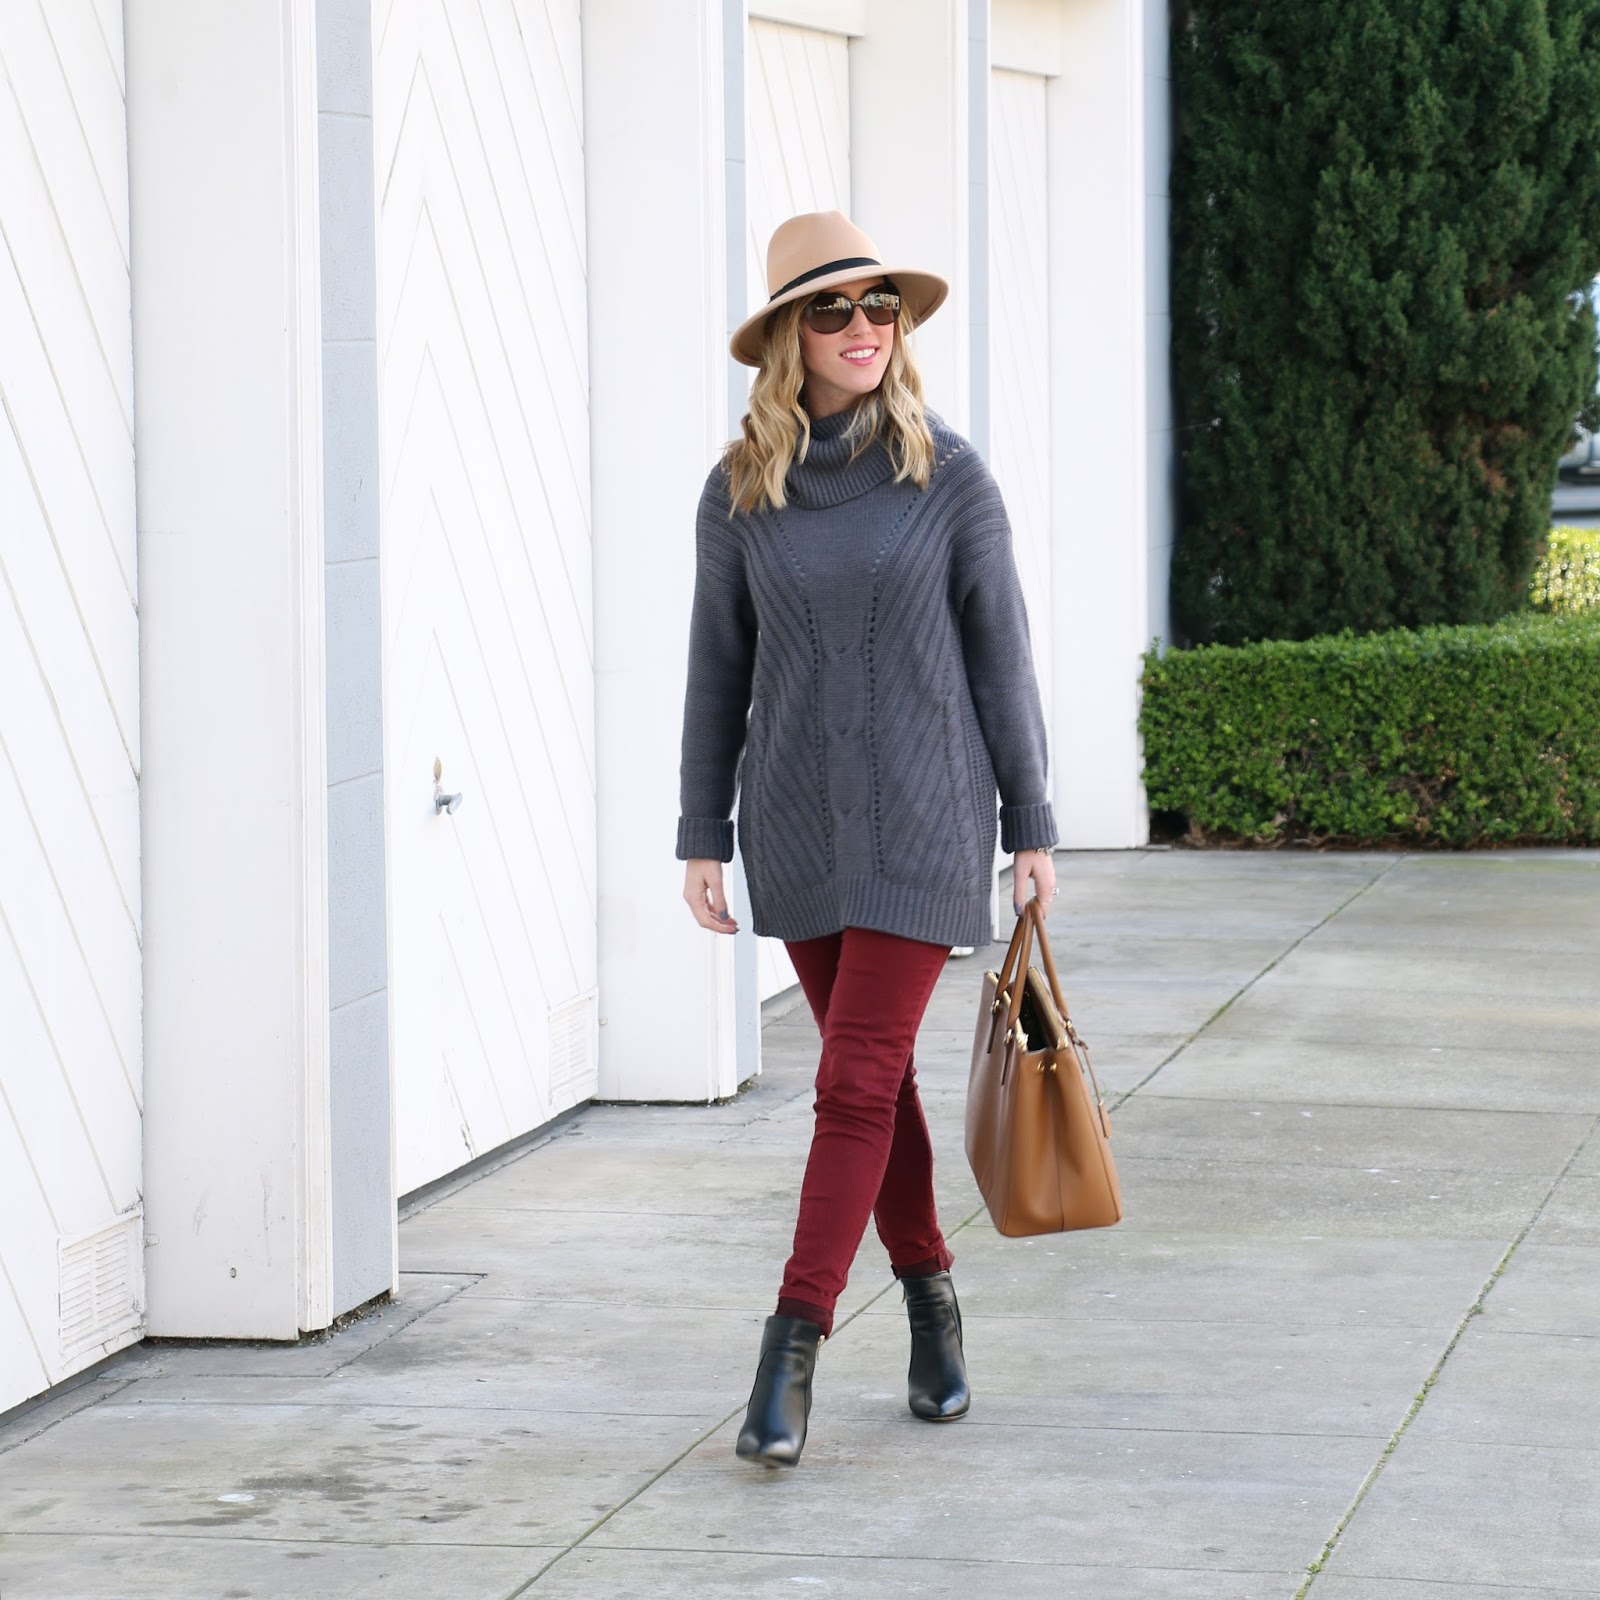 brandy melville tan hat, oversize knit michael stars sweater, oxblood jeans